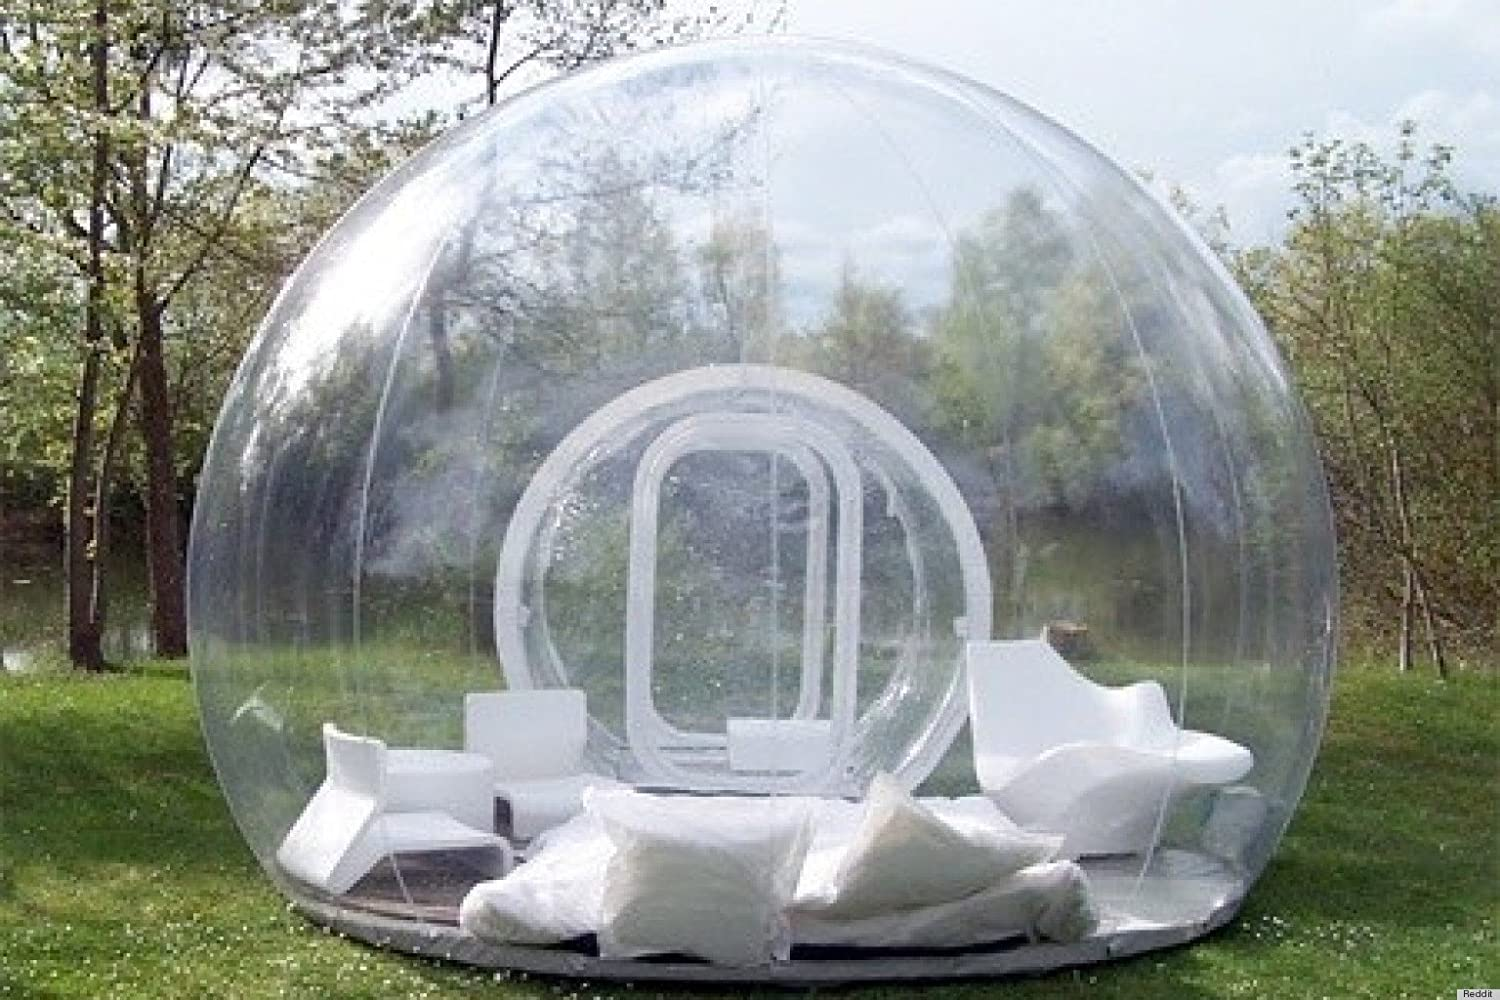 Amazon.com Outdoor Single Tunnel Inflatable Bubble Tent Family C&ing Backyard Transparent Garden u0026 Outdoor : outdoor bubble tent - memphite.com